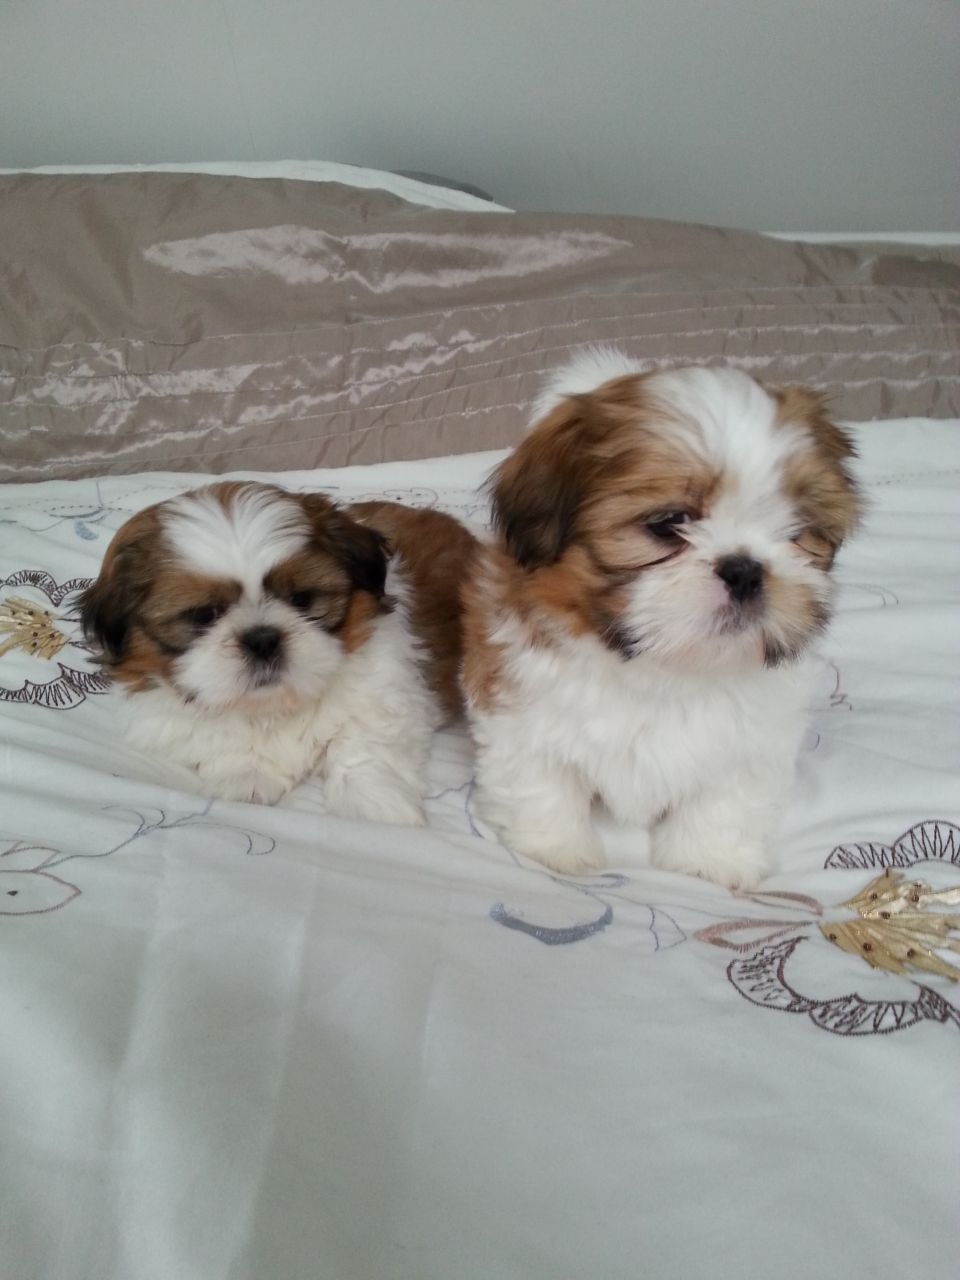 8 Week Old Shih Tzu Puppy Dog Breeds Shih Tzu